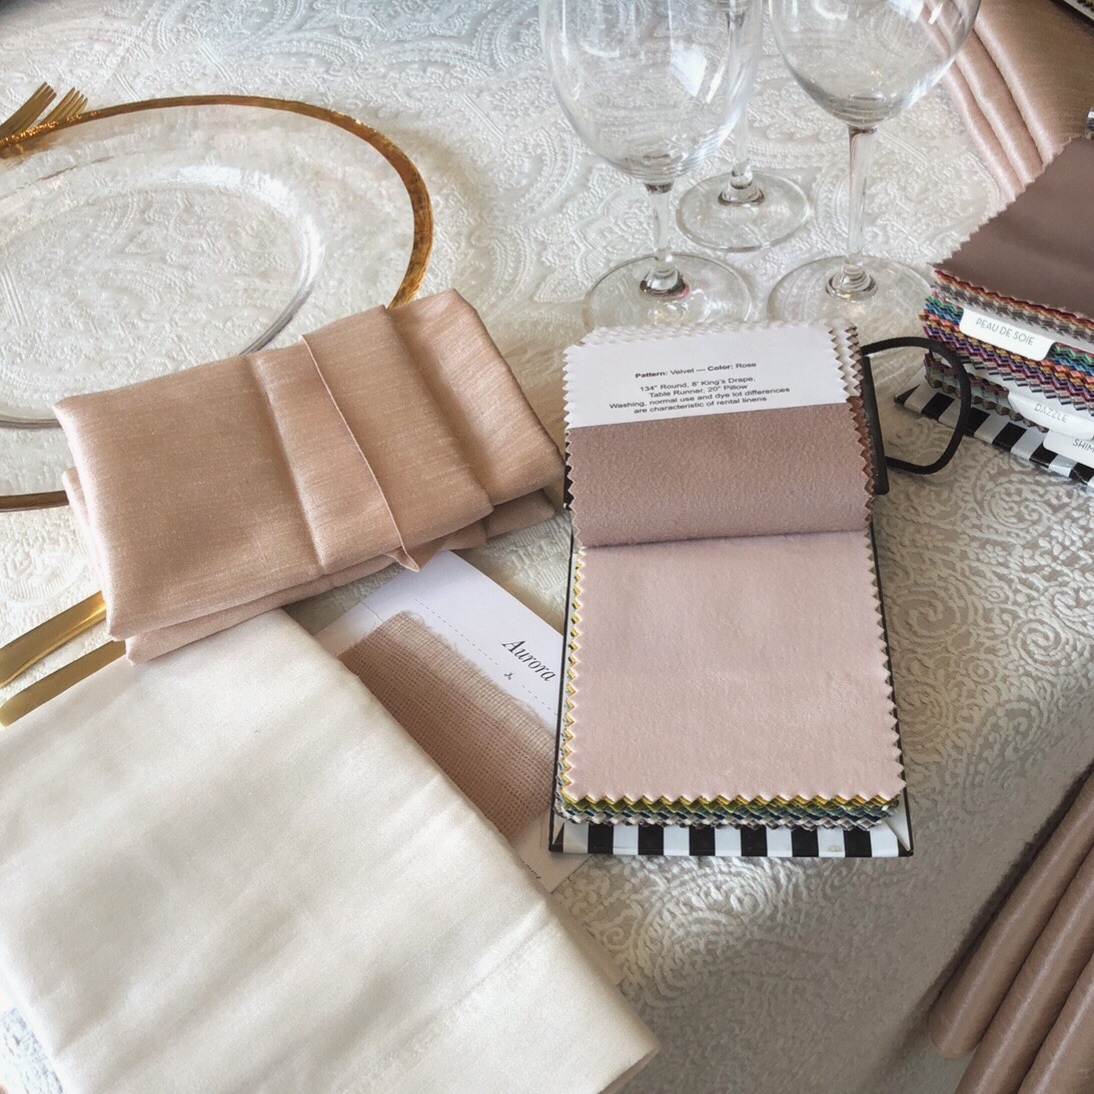 Linens+and+Napkins+.jpg